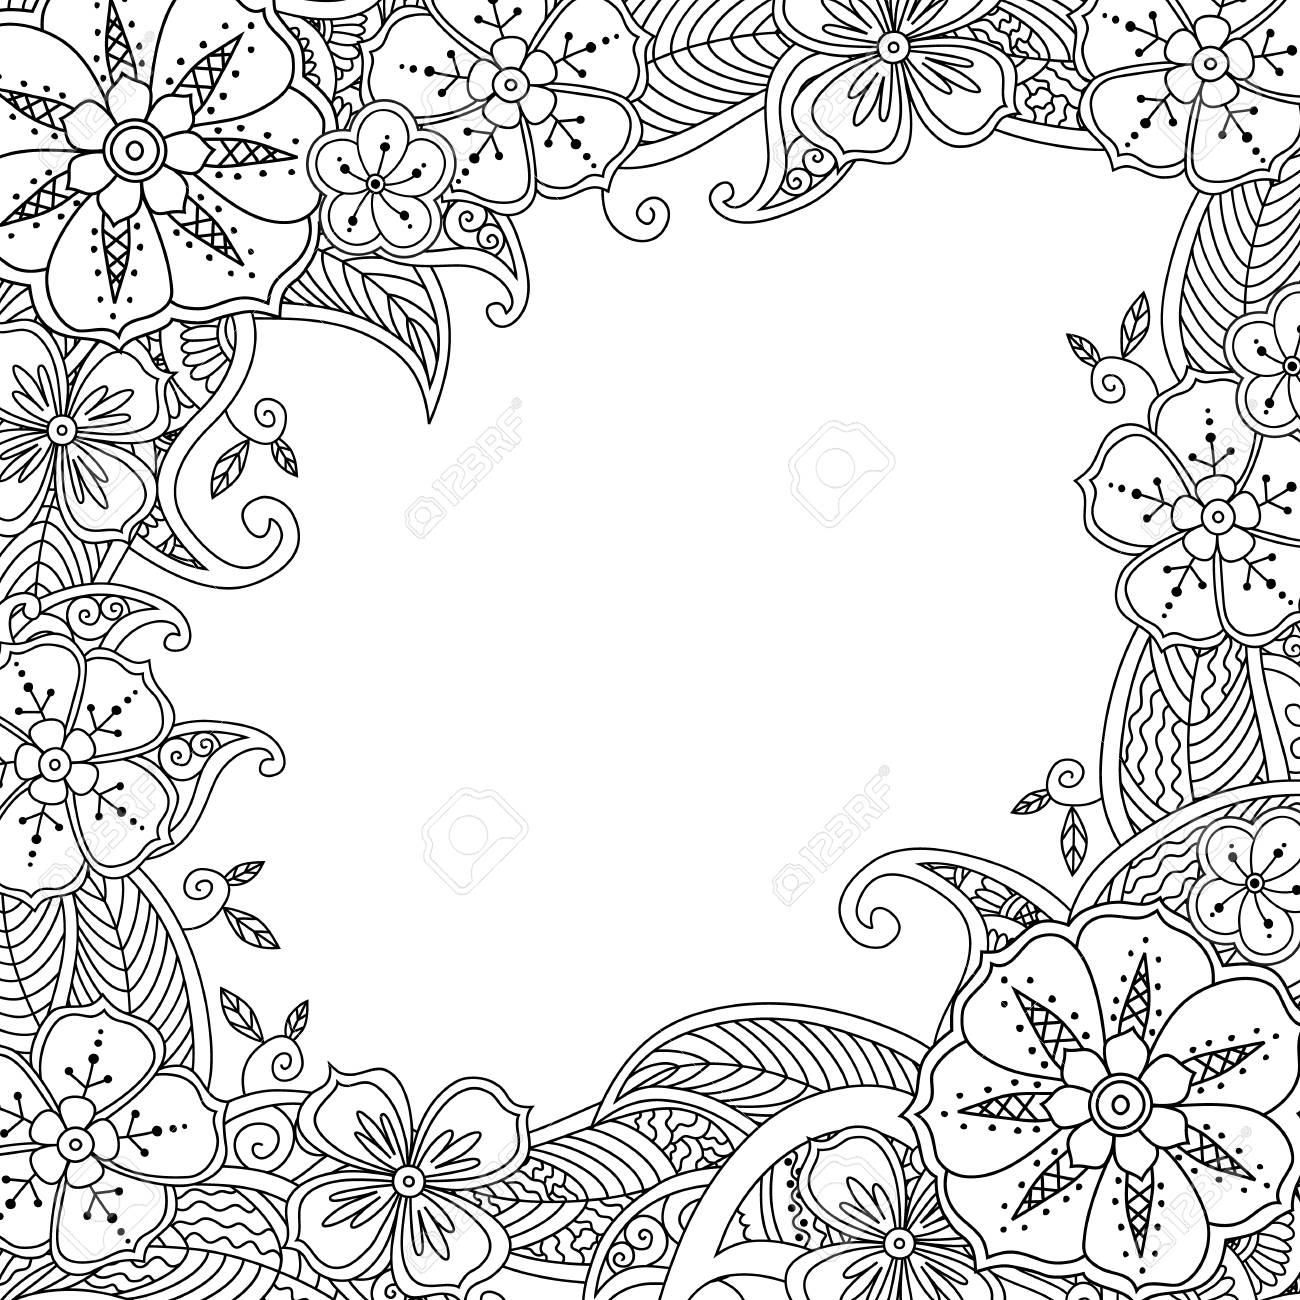 1300x1300 Beautifull Coloring Flower Border Image Coloring Pages